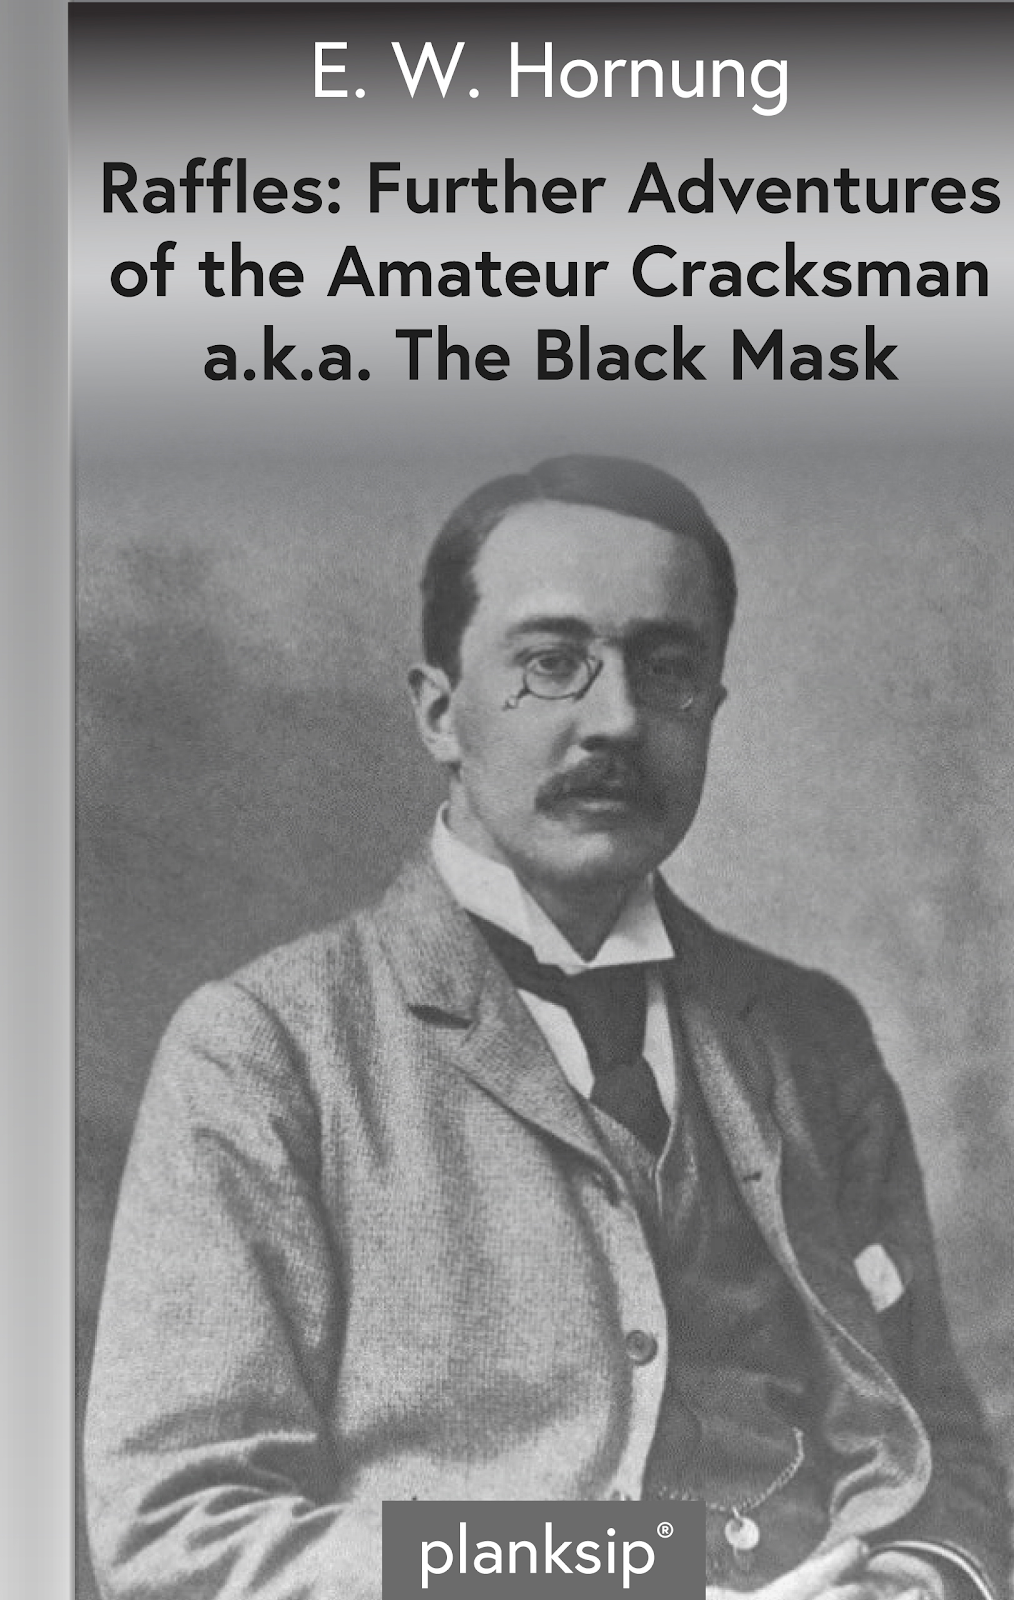 The Black Mask (ie. Further Adventures) by E.W. Hornung (1866-1921). Published by planksip